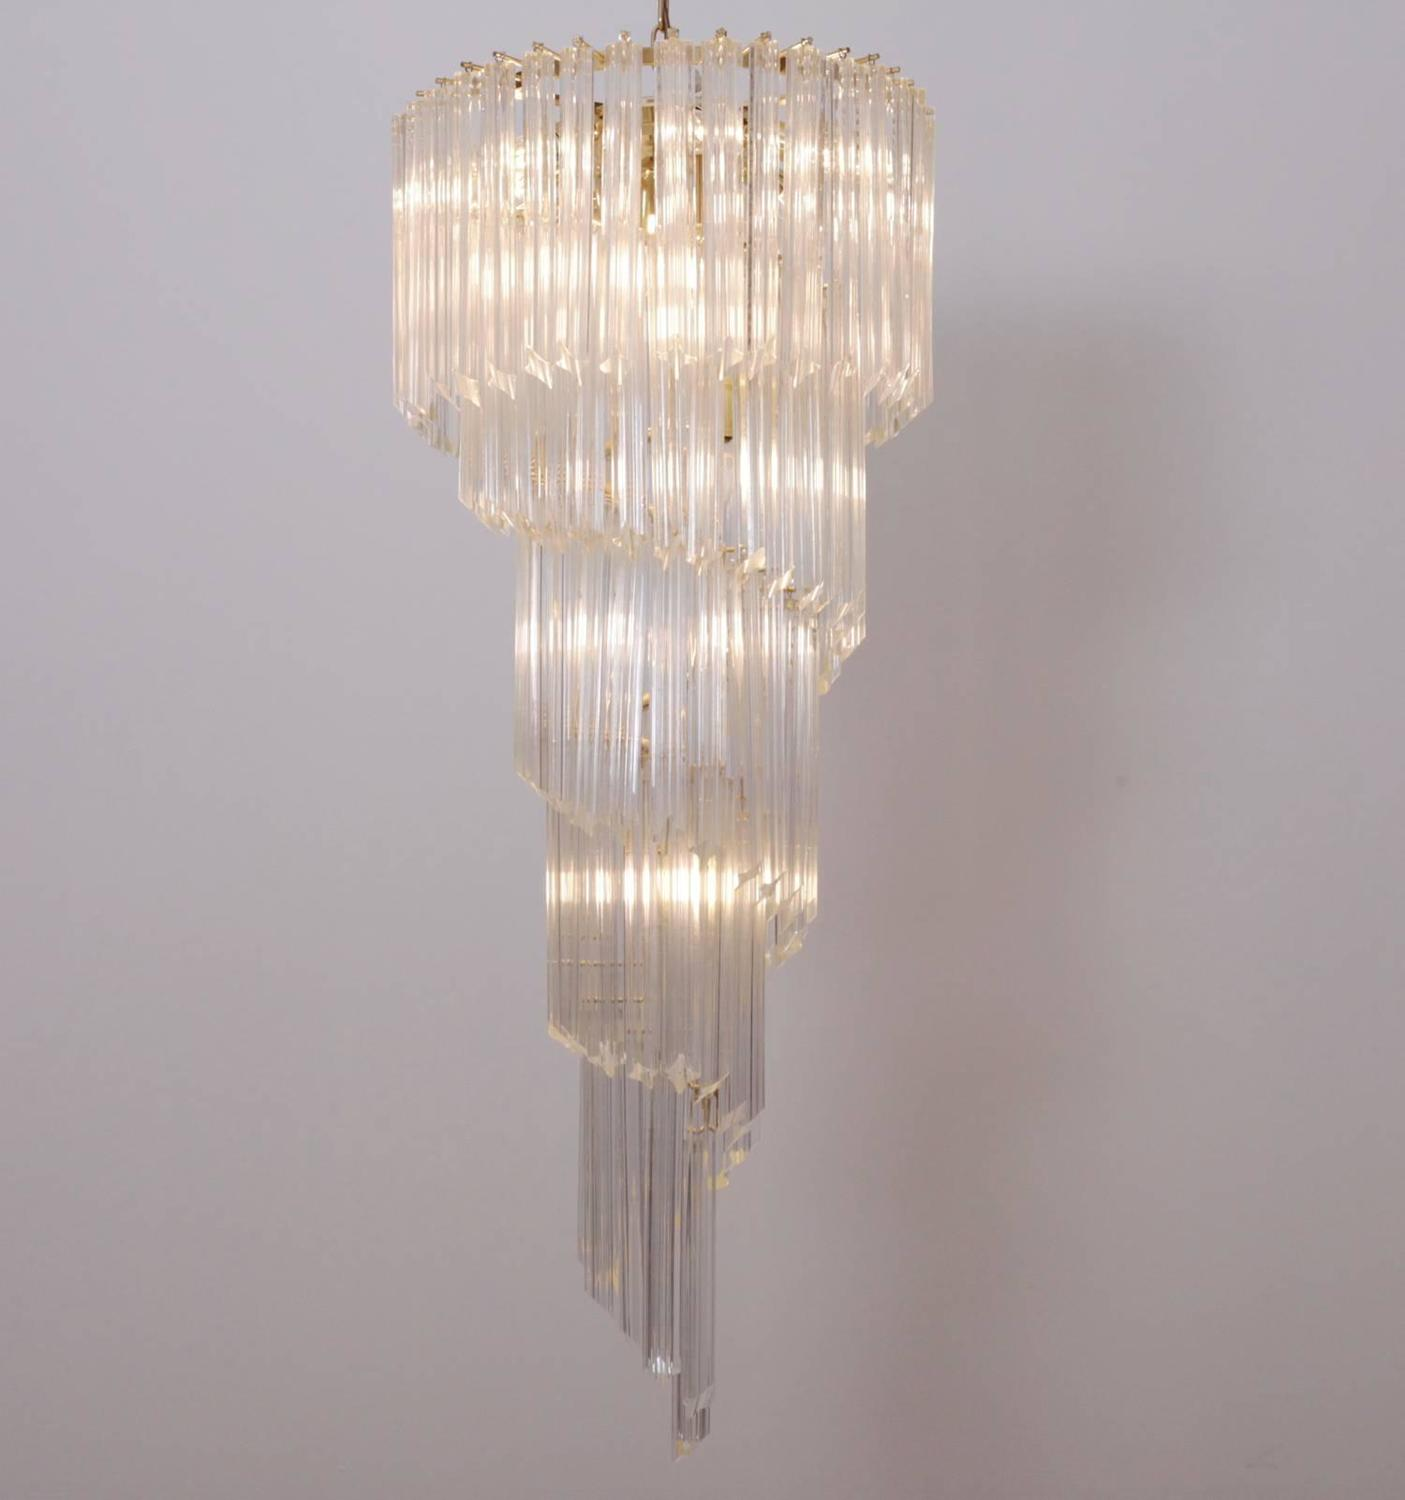 Murano Spiral Chandelier: Very Huge Murano Glass Spiral Chandelier By Venini For